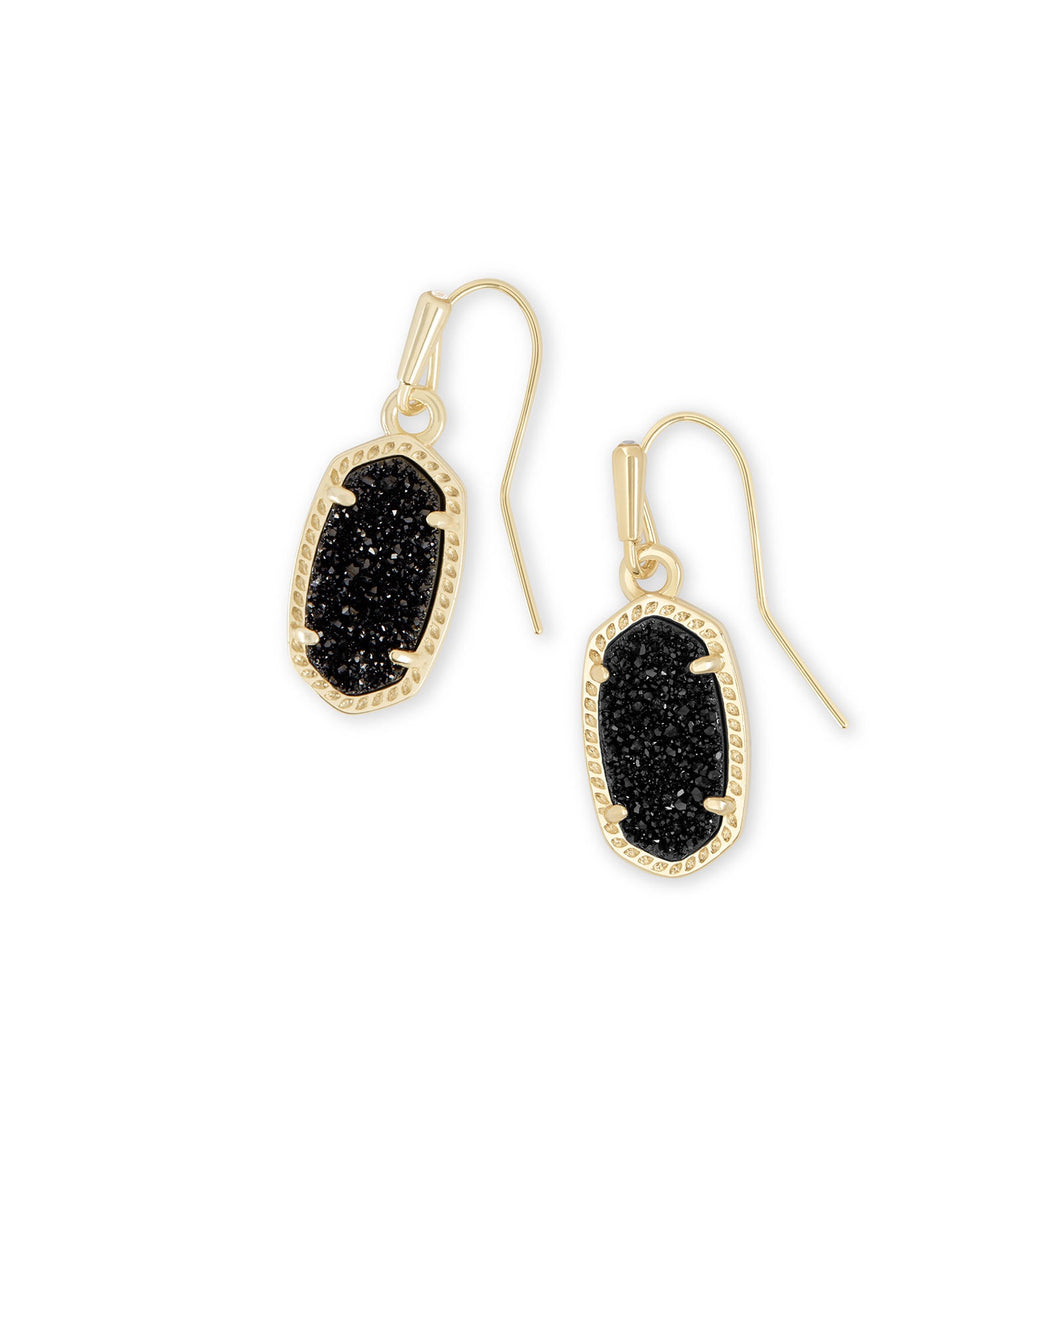 Lee Gold Drop Earrings-Black Drusy